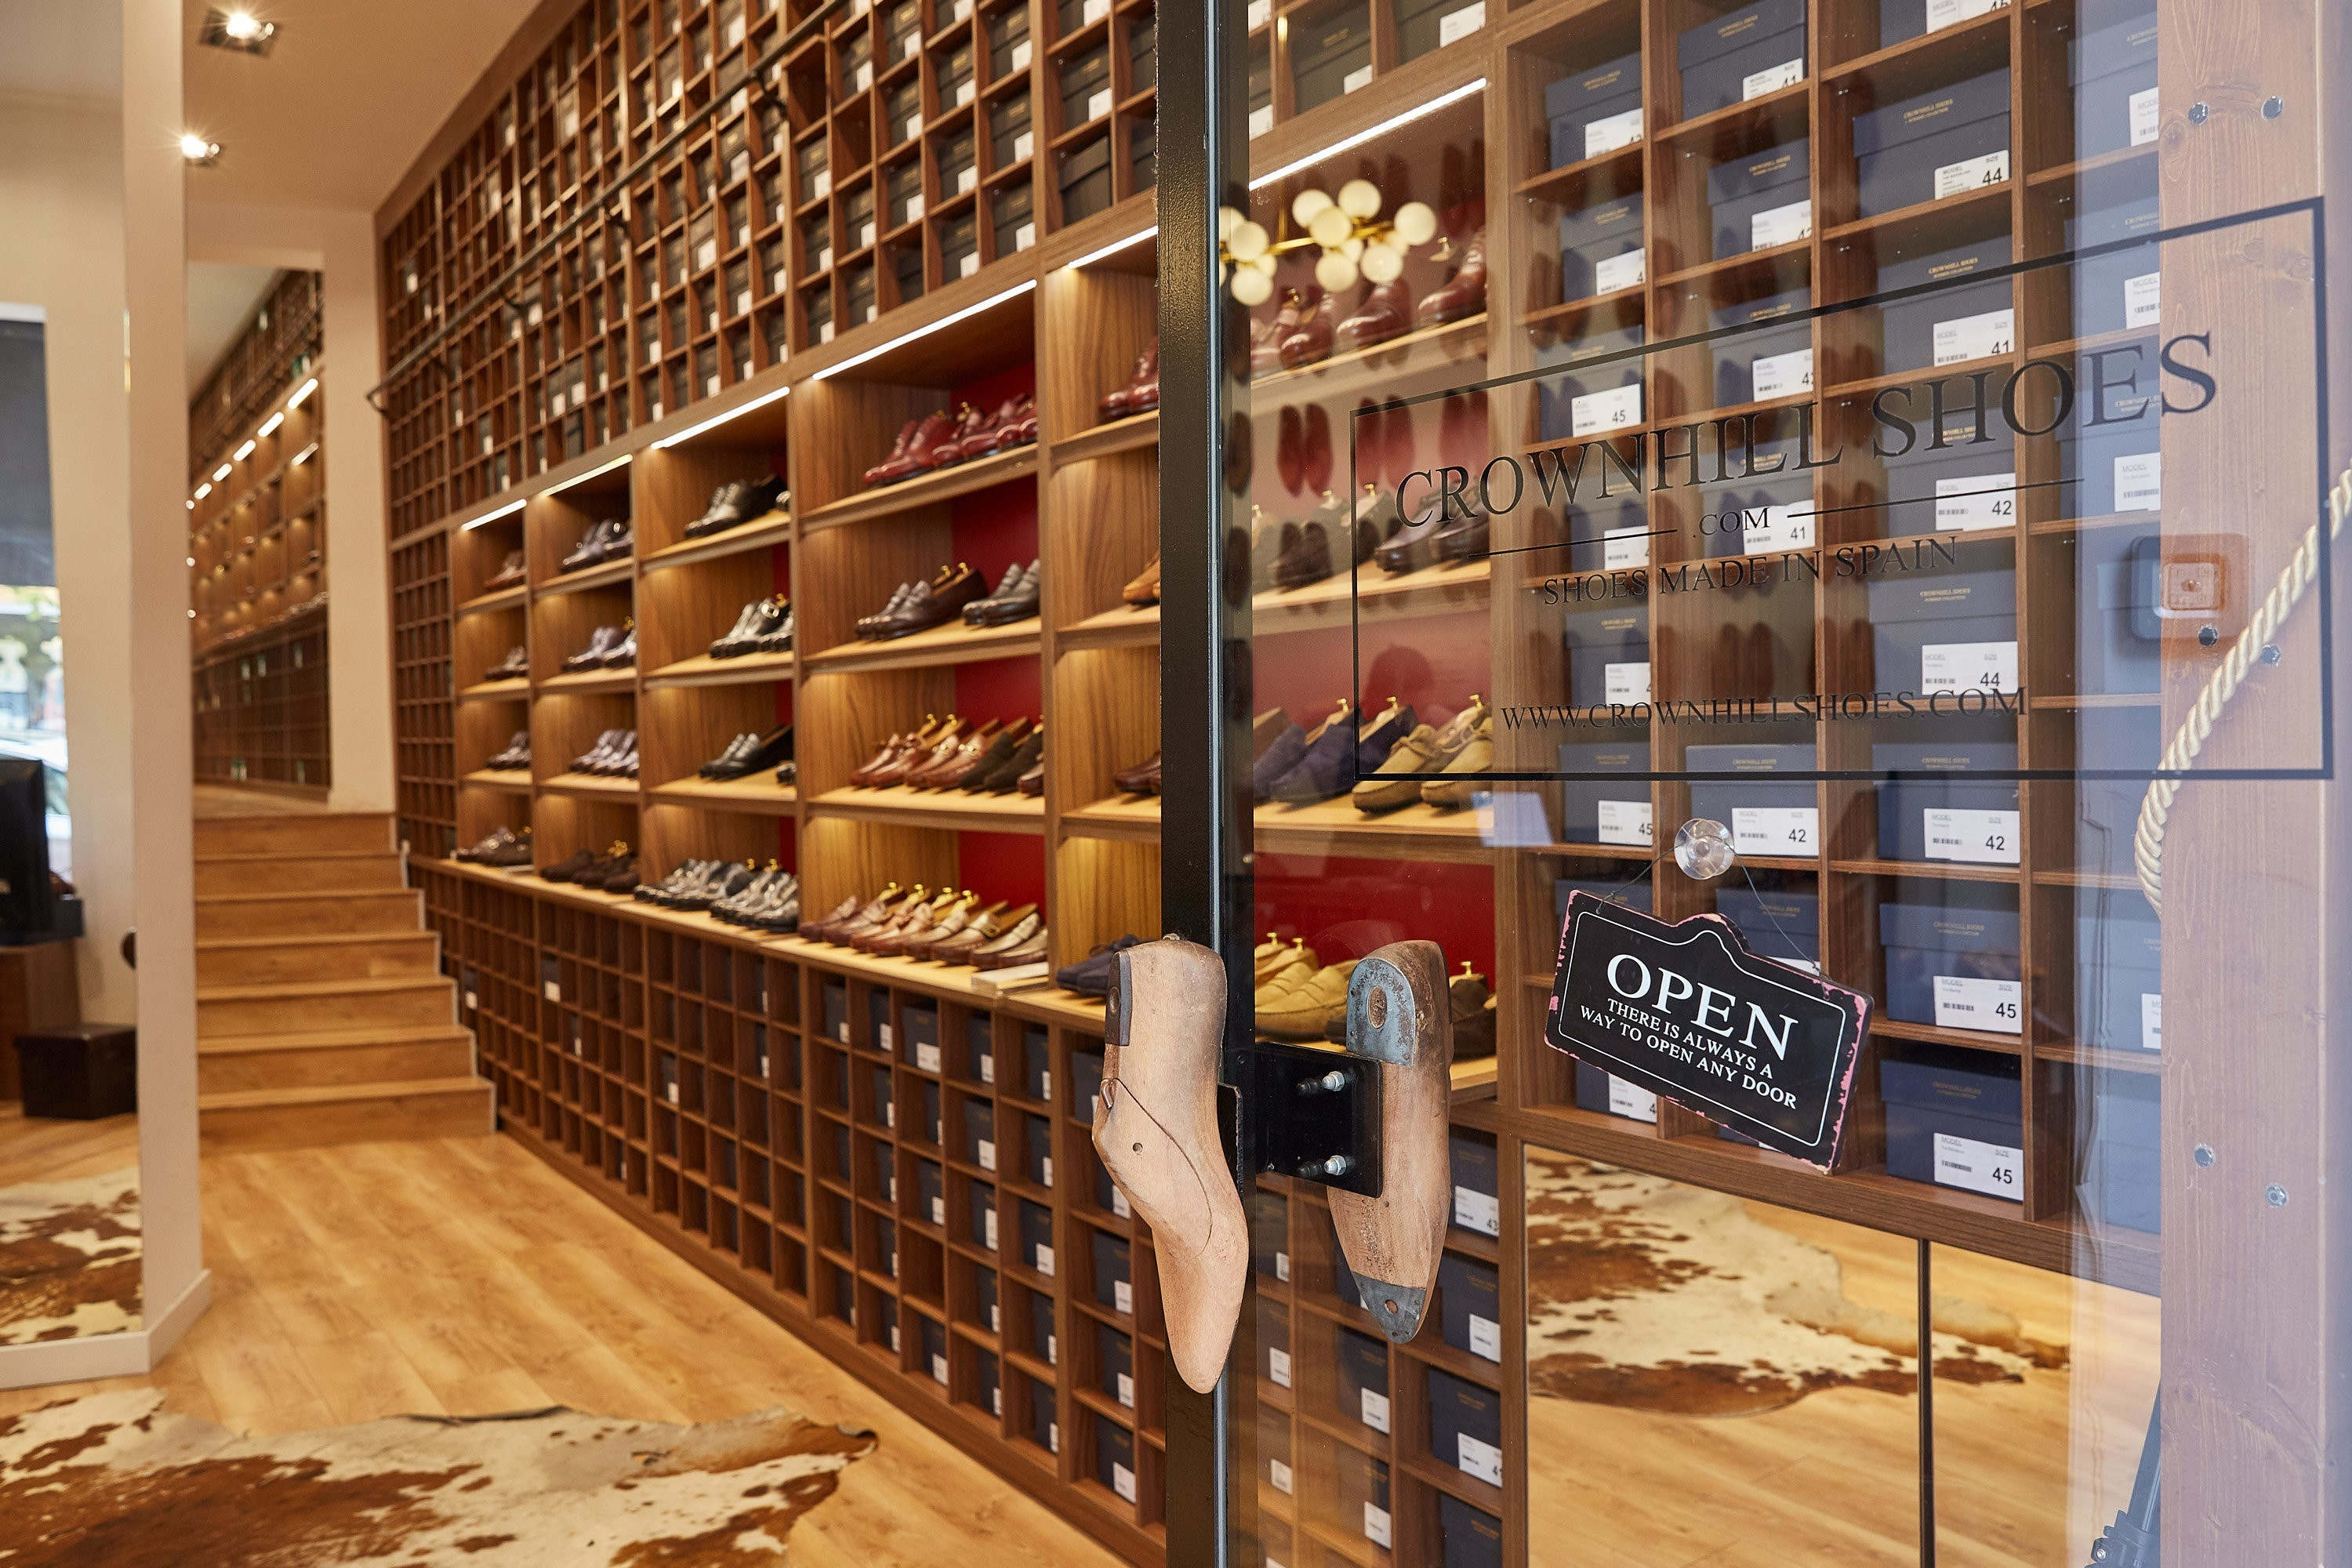 Crownhill_Shoes_Store_01